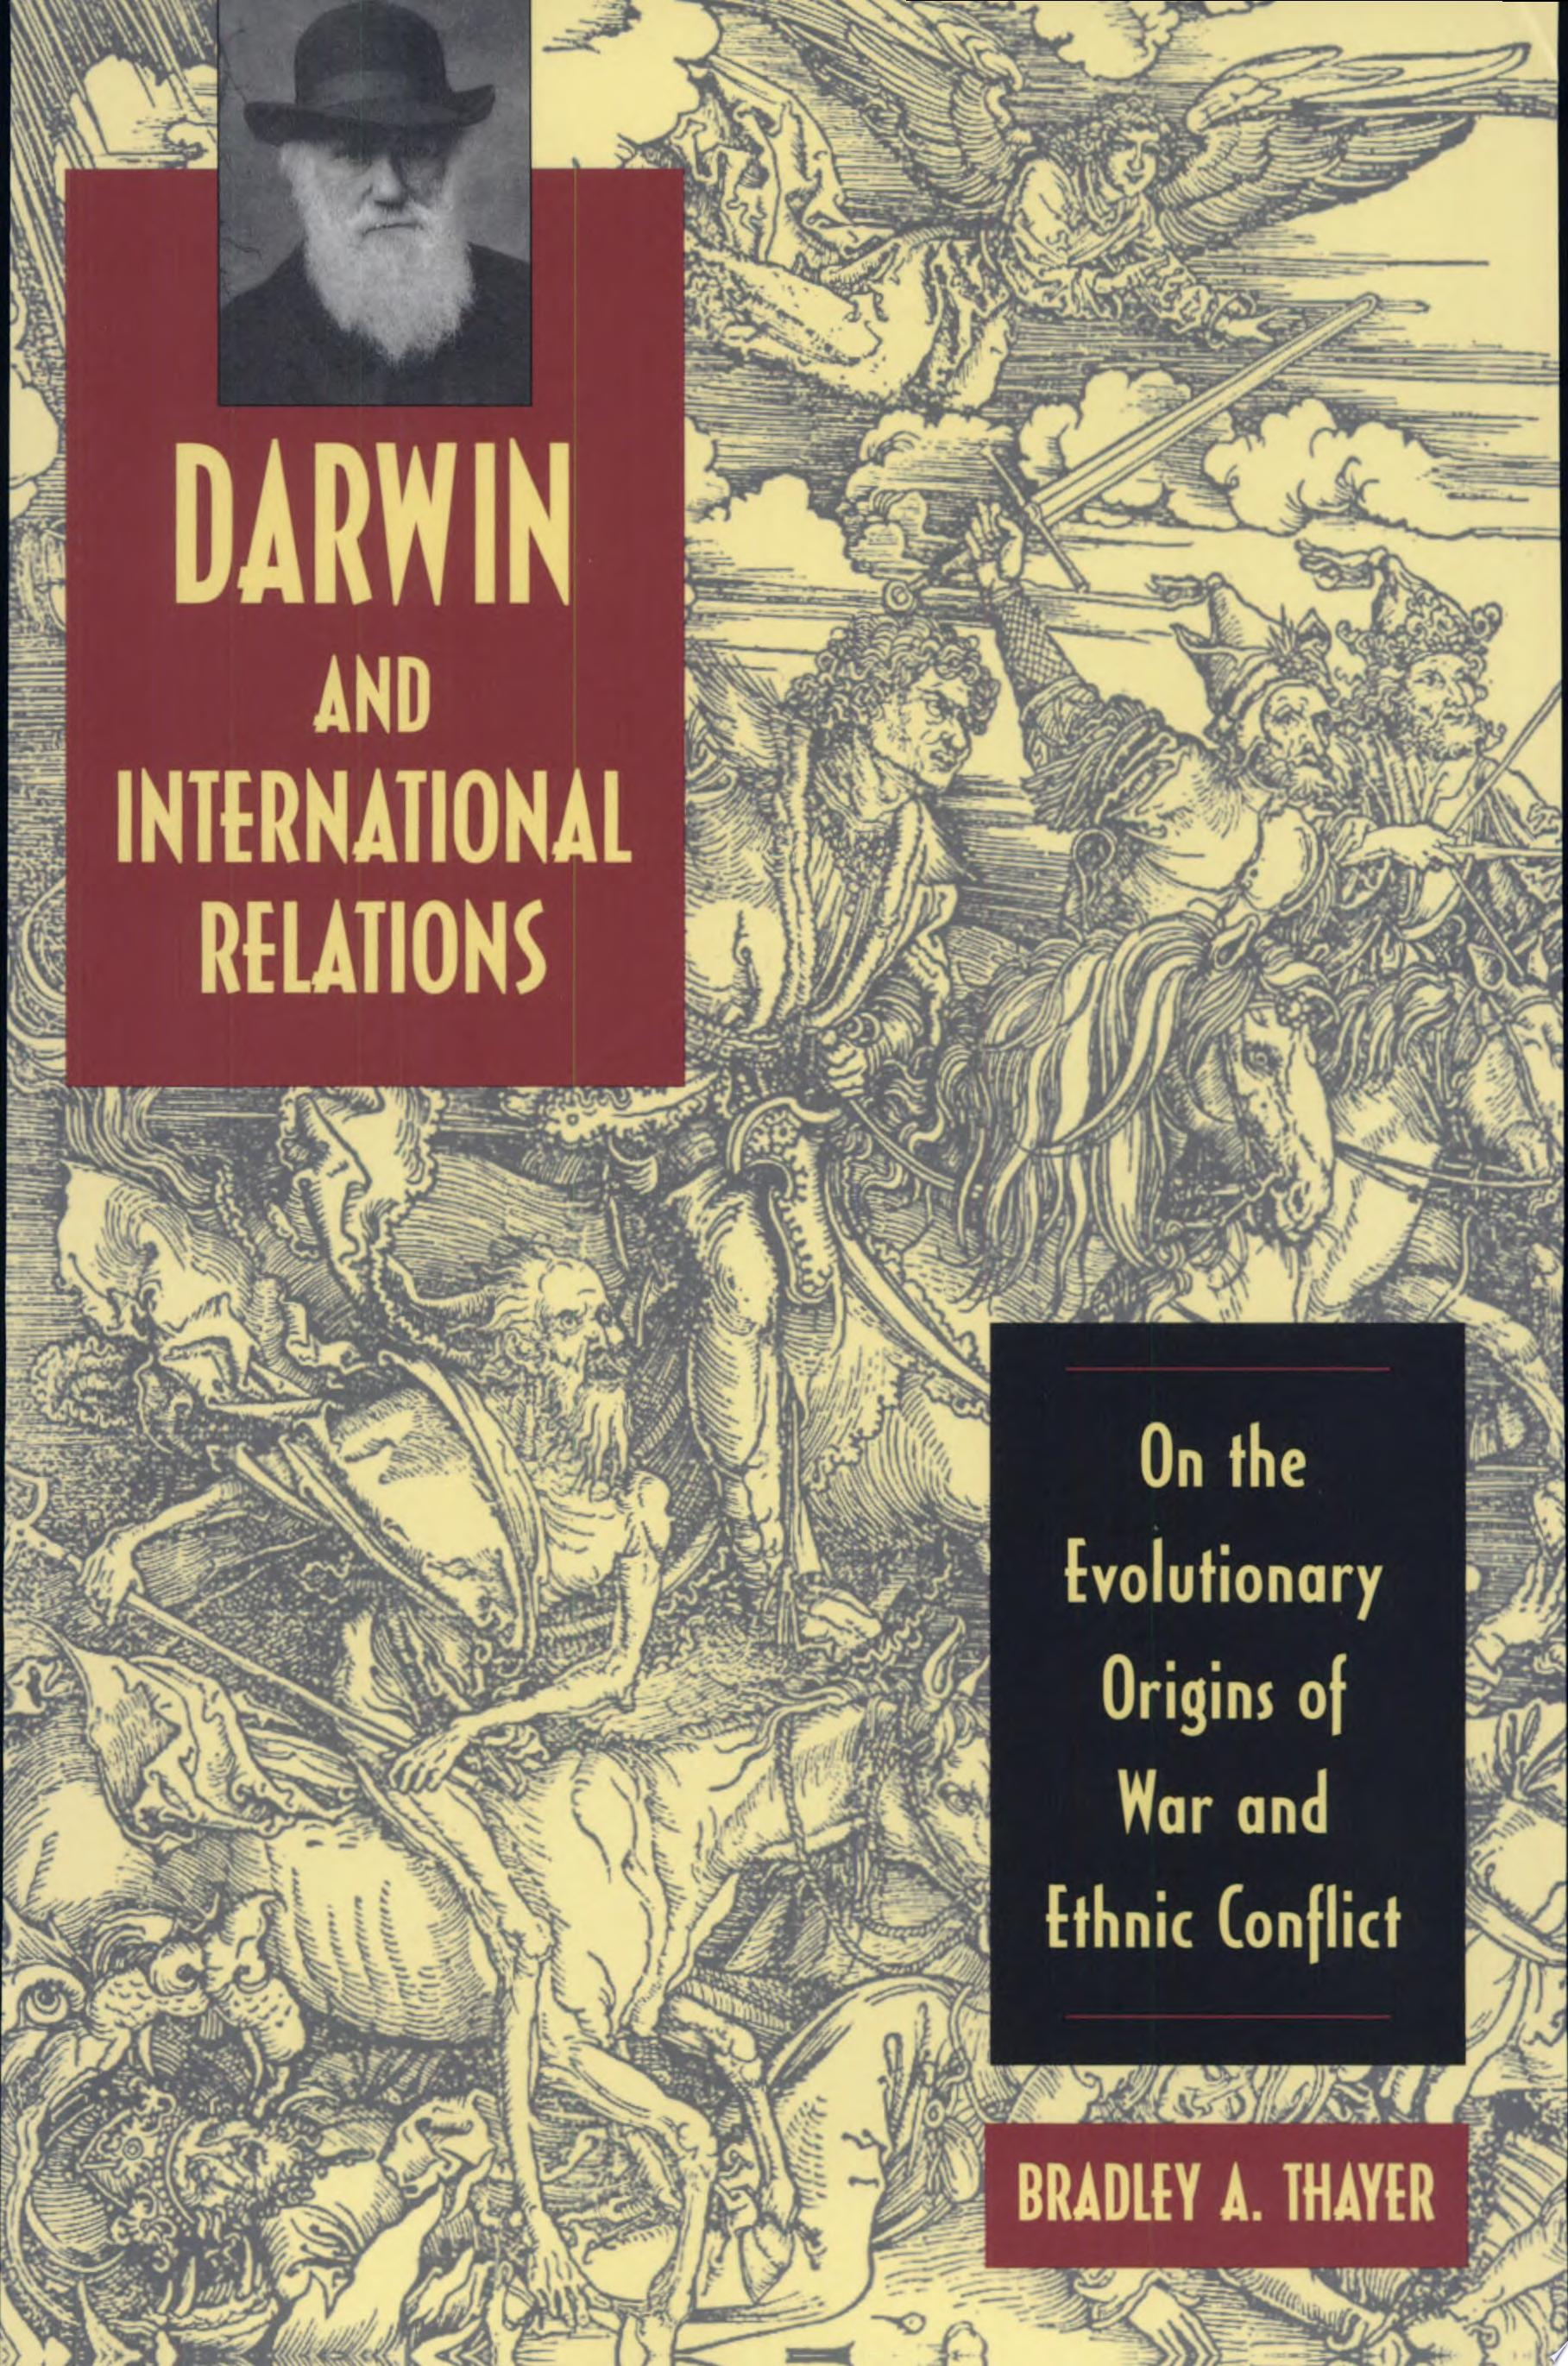 Darwin and International Relations  On the Evolutionary Origins of War and Ethnic Conflict